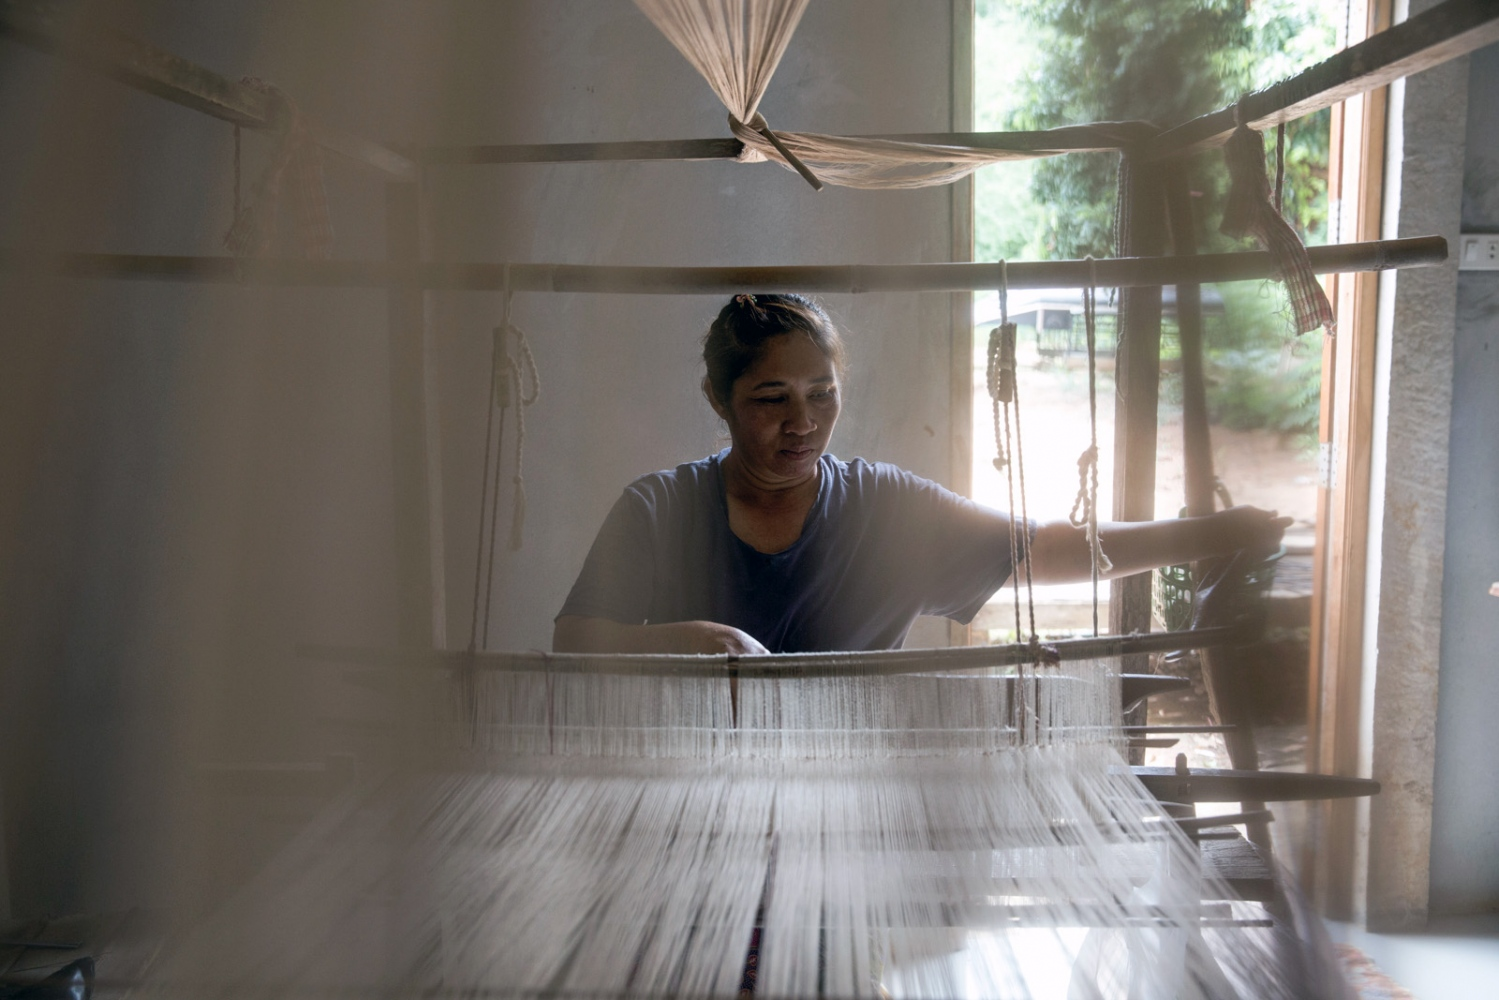 To raise additional income to suppliment any loss of work caused by their activism, women of the Khon Rak Ban Kerd environmental group weave and sell their products.